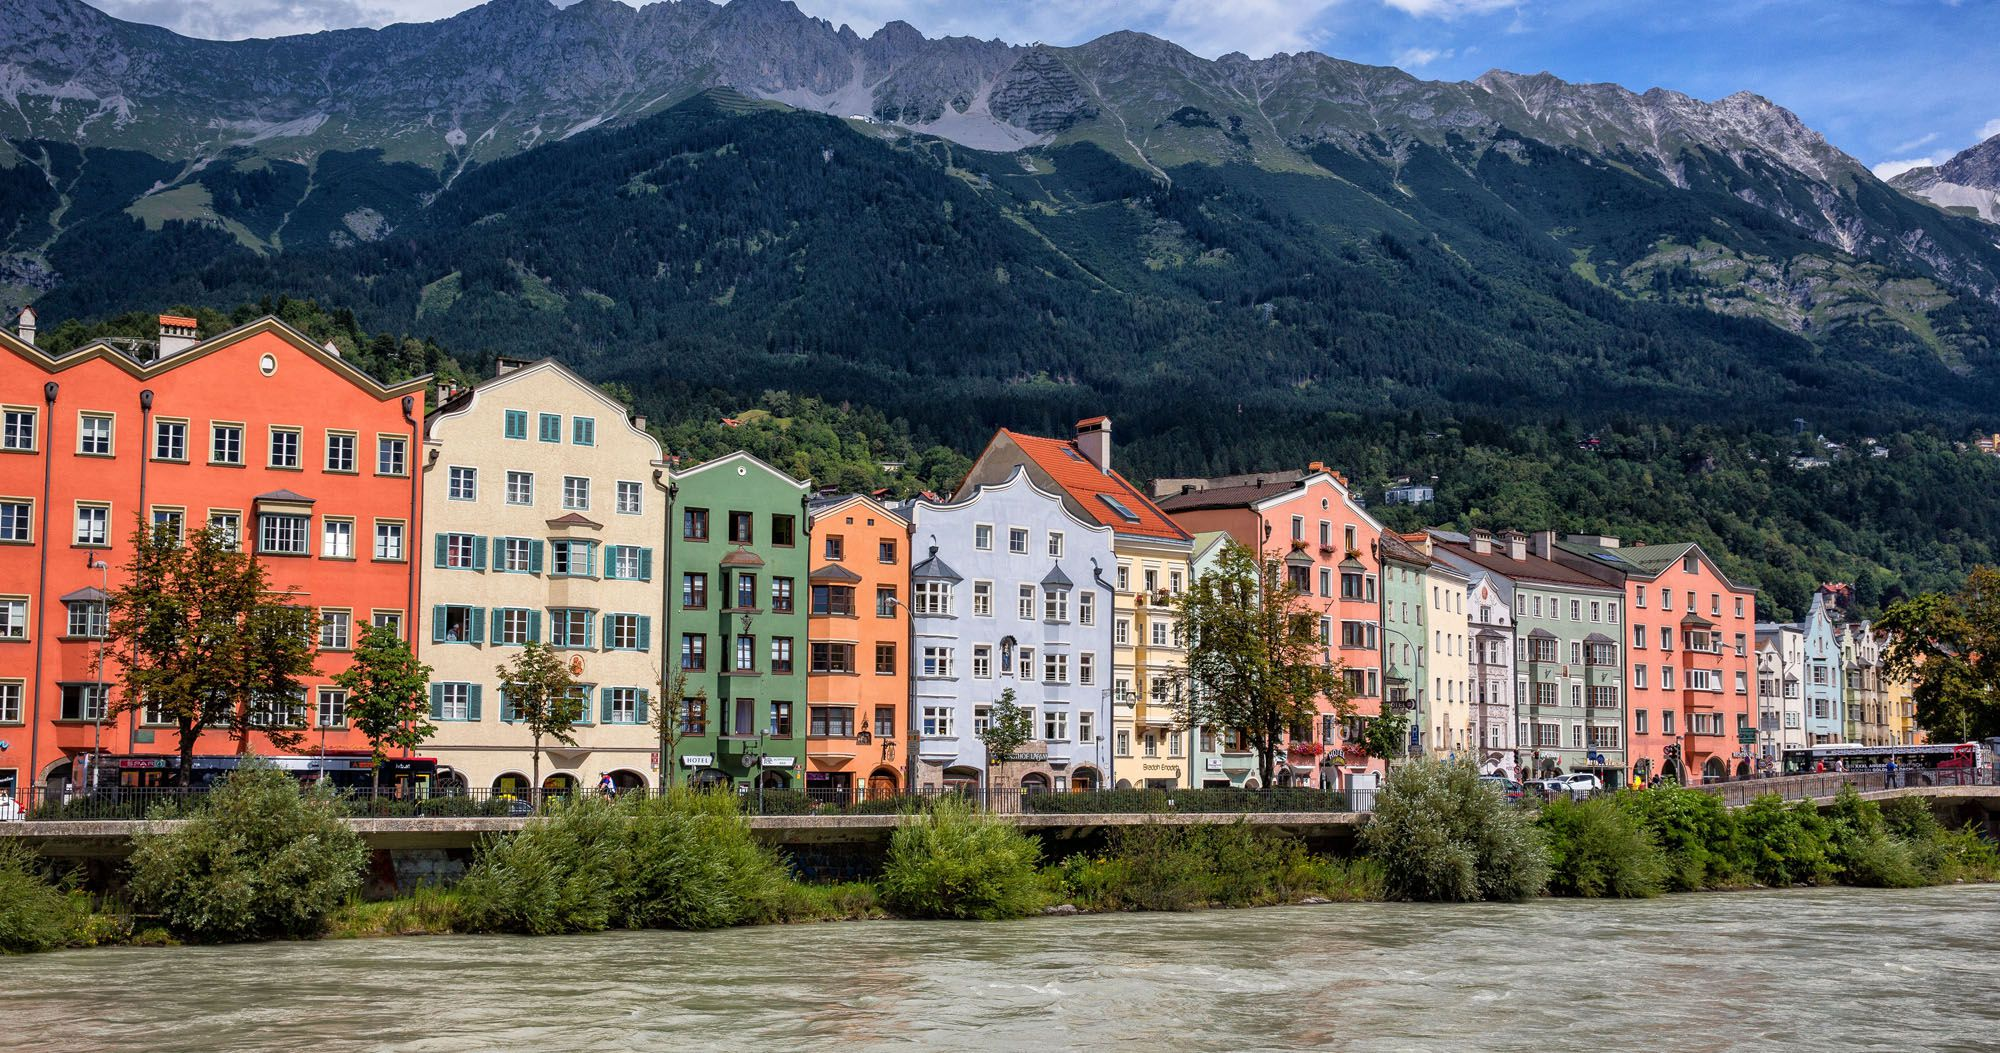 Things to do in Innsbruck